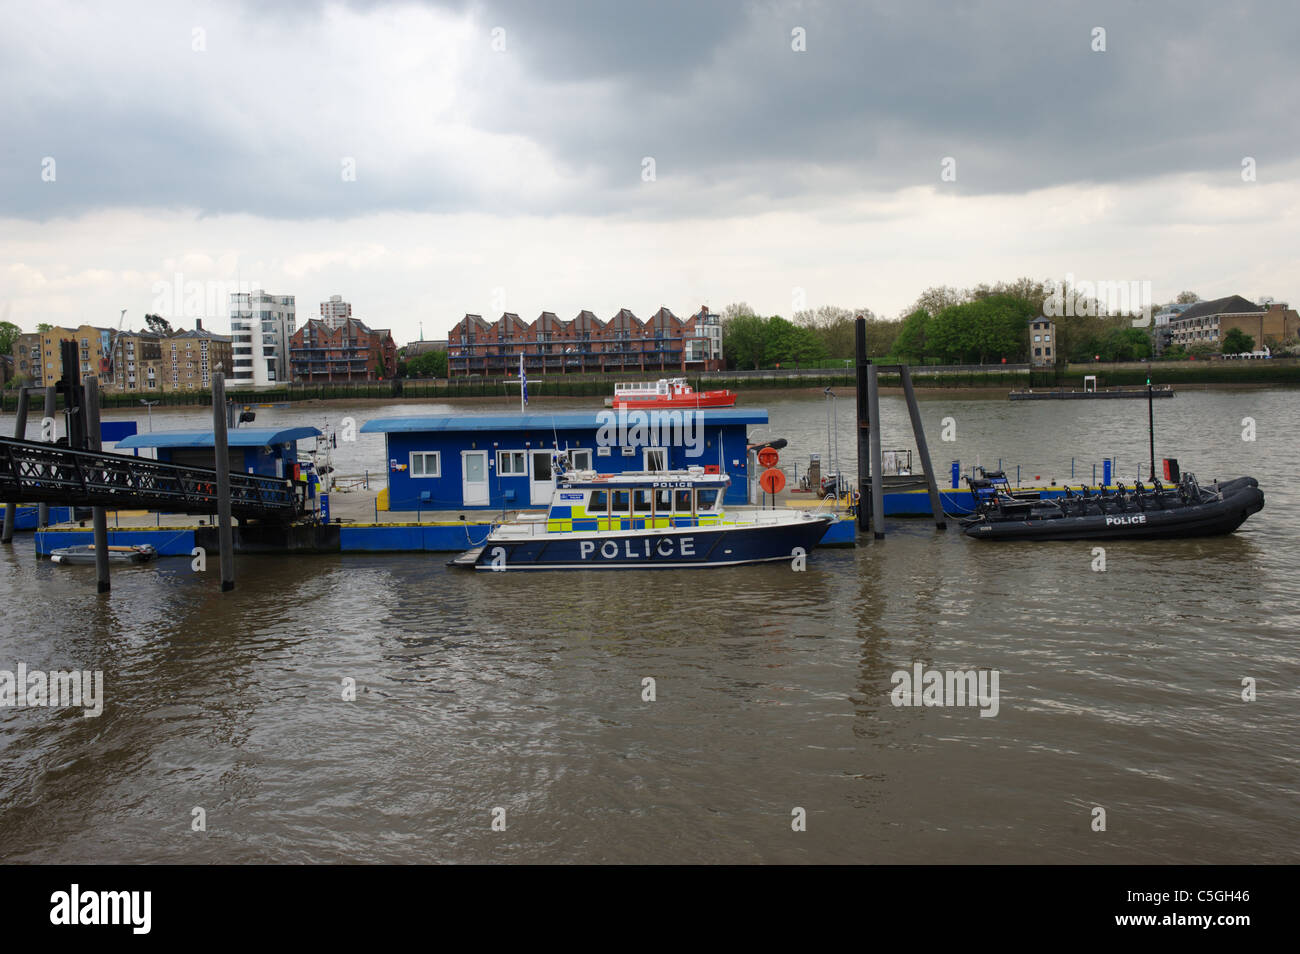 The Marine Policing Unit at the River Thames, Wapping, London, England, UK - Stock Image